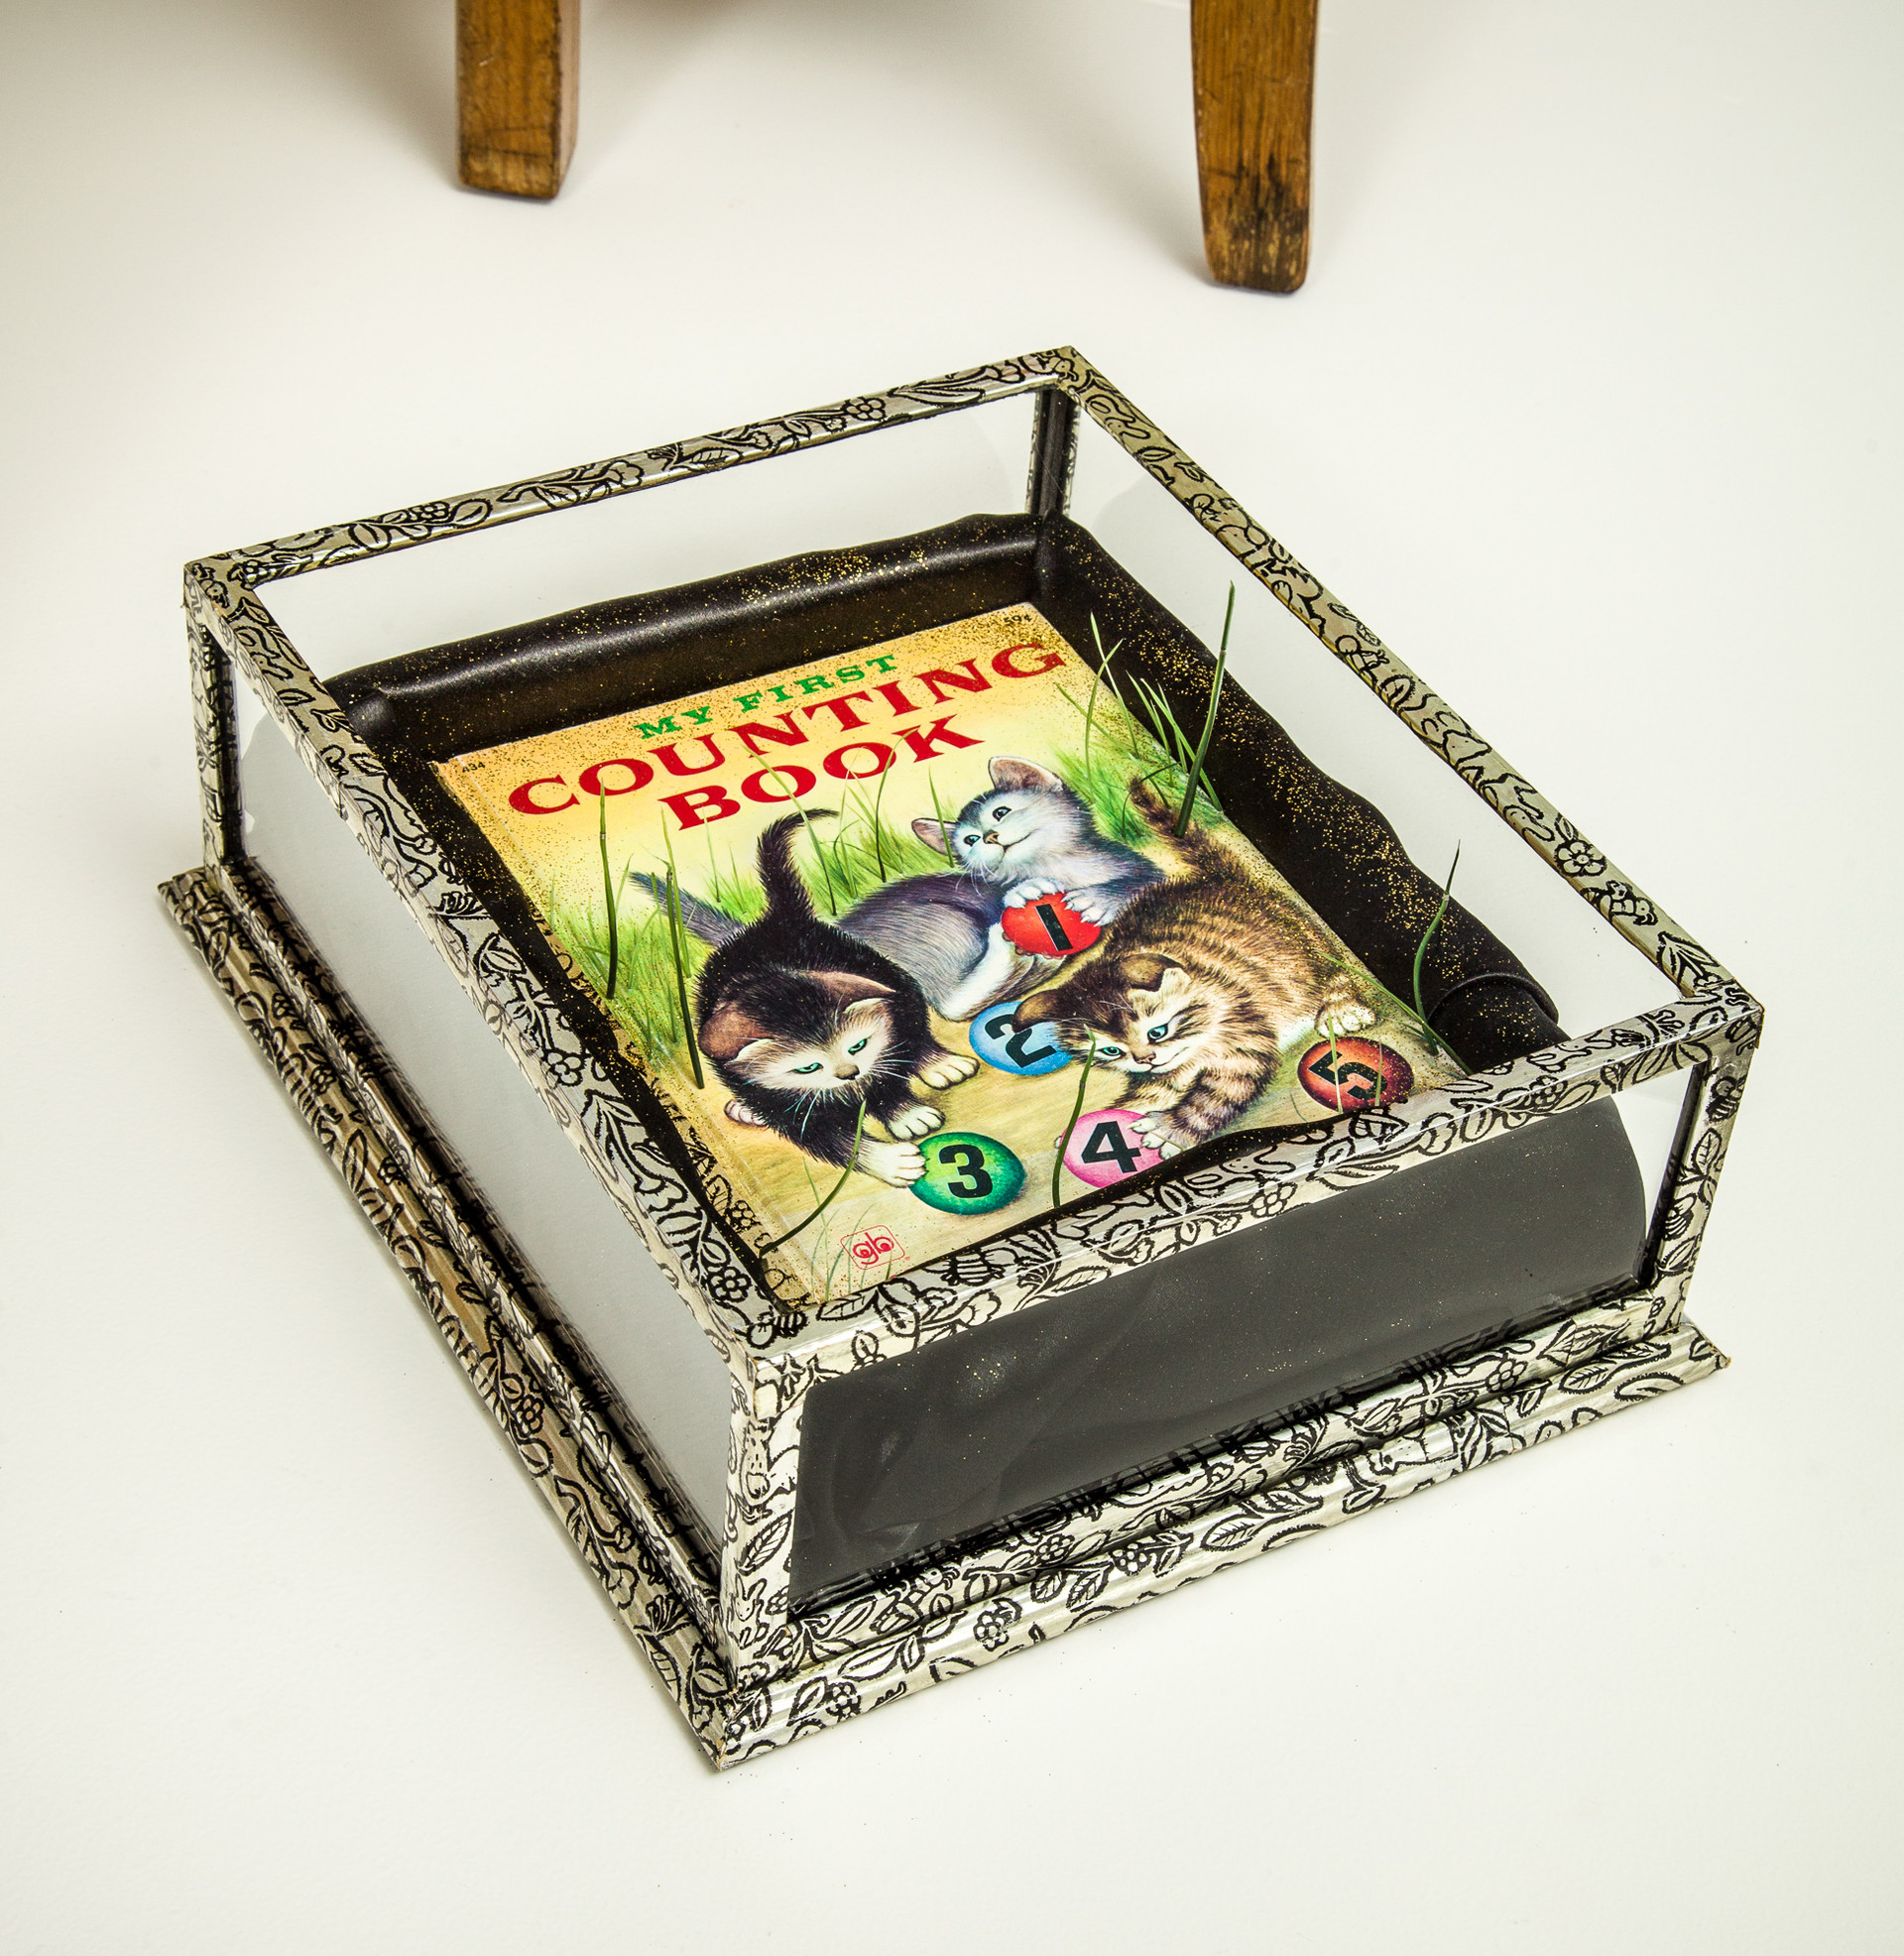 An unaltered copy of the original book is contained in a plexiglass box that resembles a coffin, thus accentuating the extinction theme. Grass grows from book face through the box's clear top.